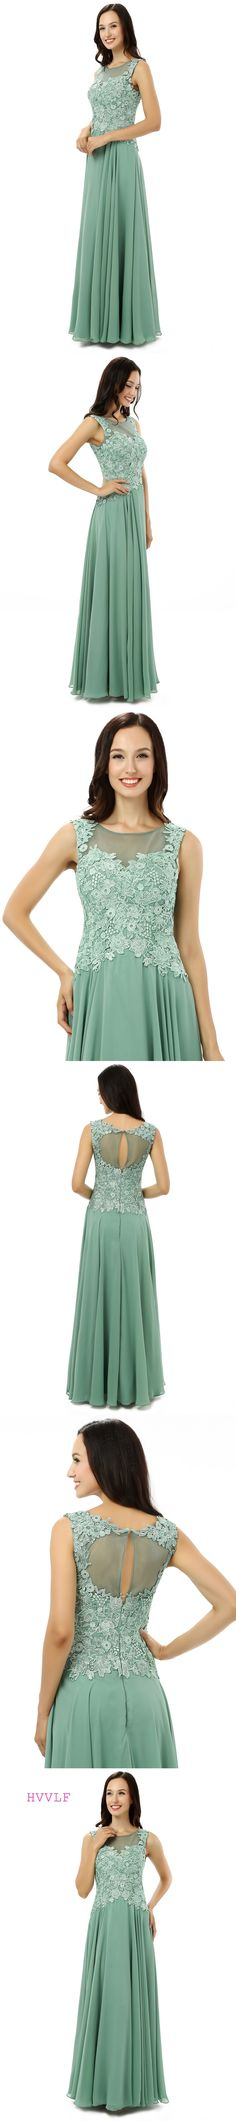 Maternity Evening Dresses 2018 A-line Cap Sleeves Floor Length Chiffon Lace  Open Back Long Evening Gown Prom Dress Prom Gown dfd9377e61b2